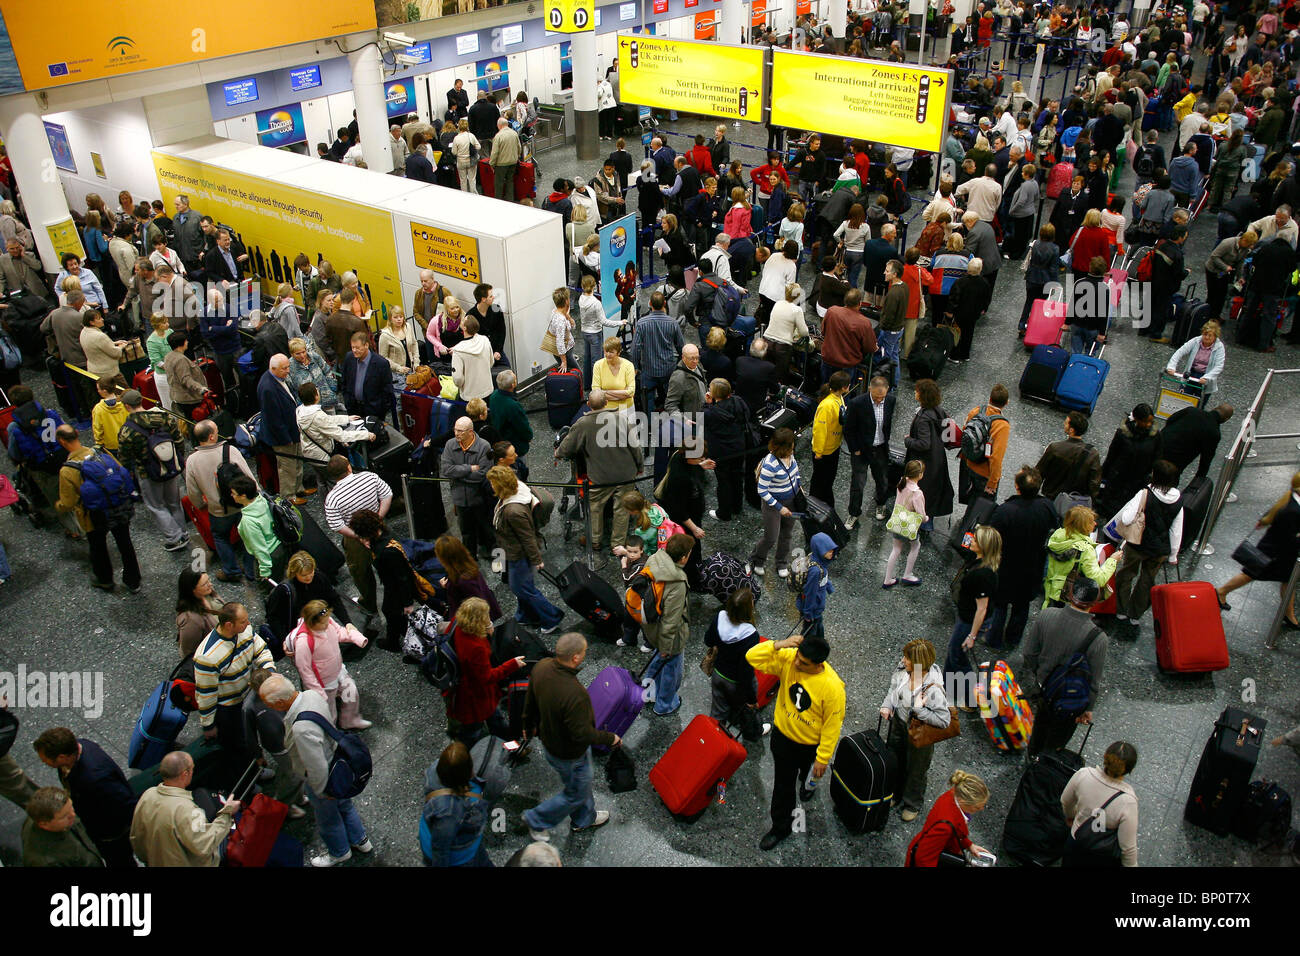 Passengers fill the Departure Hall of the South Terminal at London's Gatwick Airport. Picture by James Boardman. - Stock Image